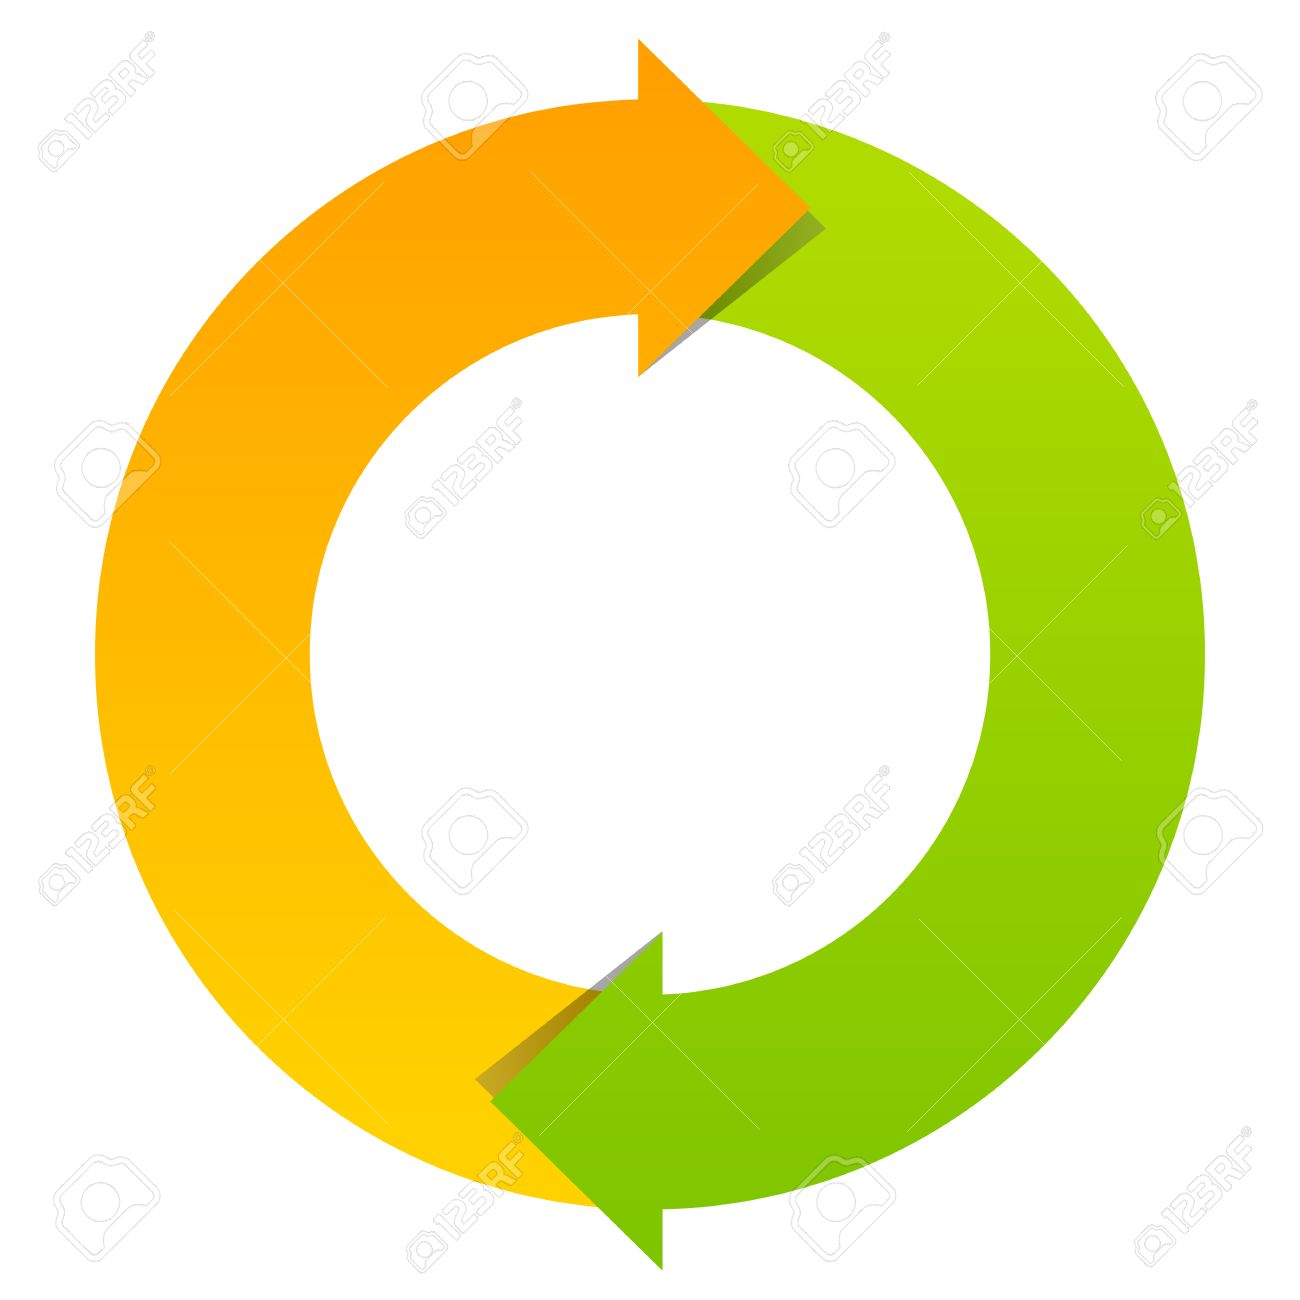 two part cycle diagram royalty free cliparts vectors and stock  : cycle diagram - findchart.co